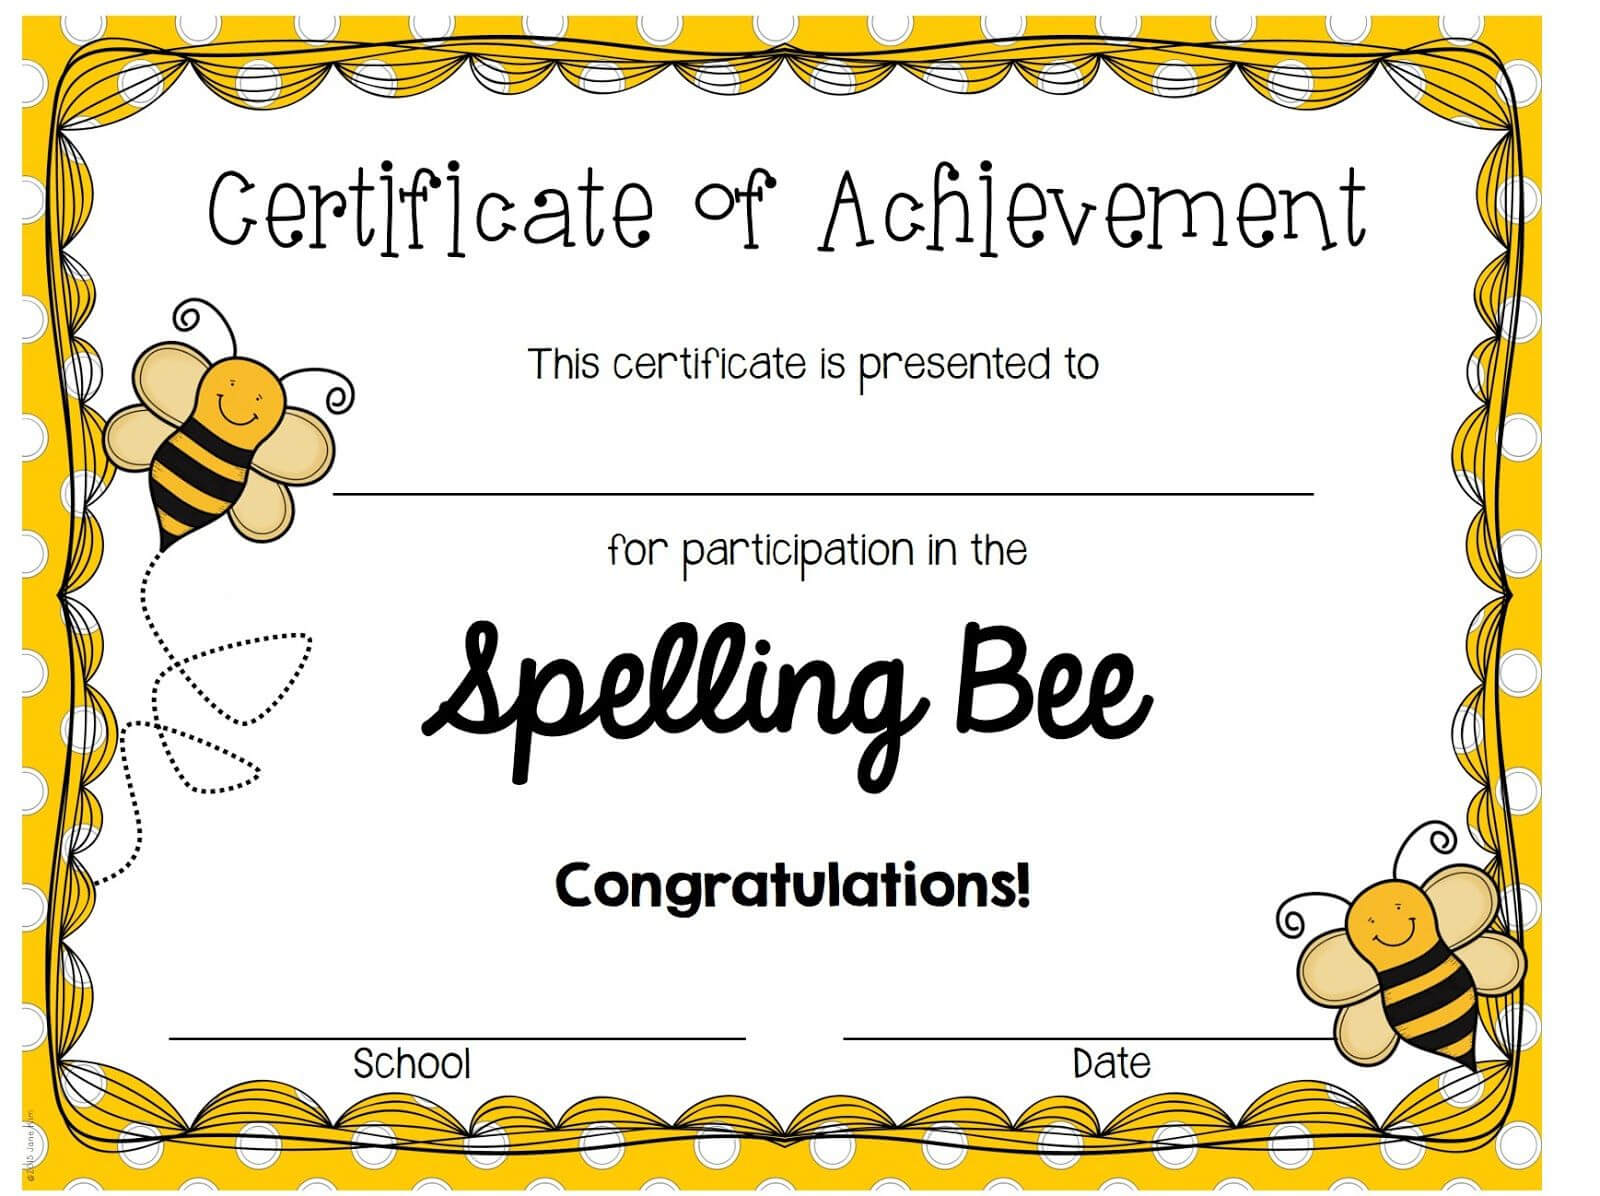 Imagine That!: Search Results For Spelling Bee | First Grade With Spelling Bee Award Certificate Template